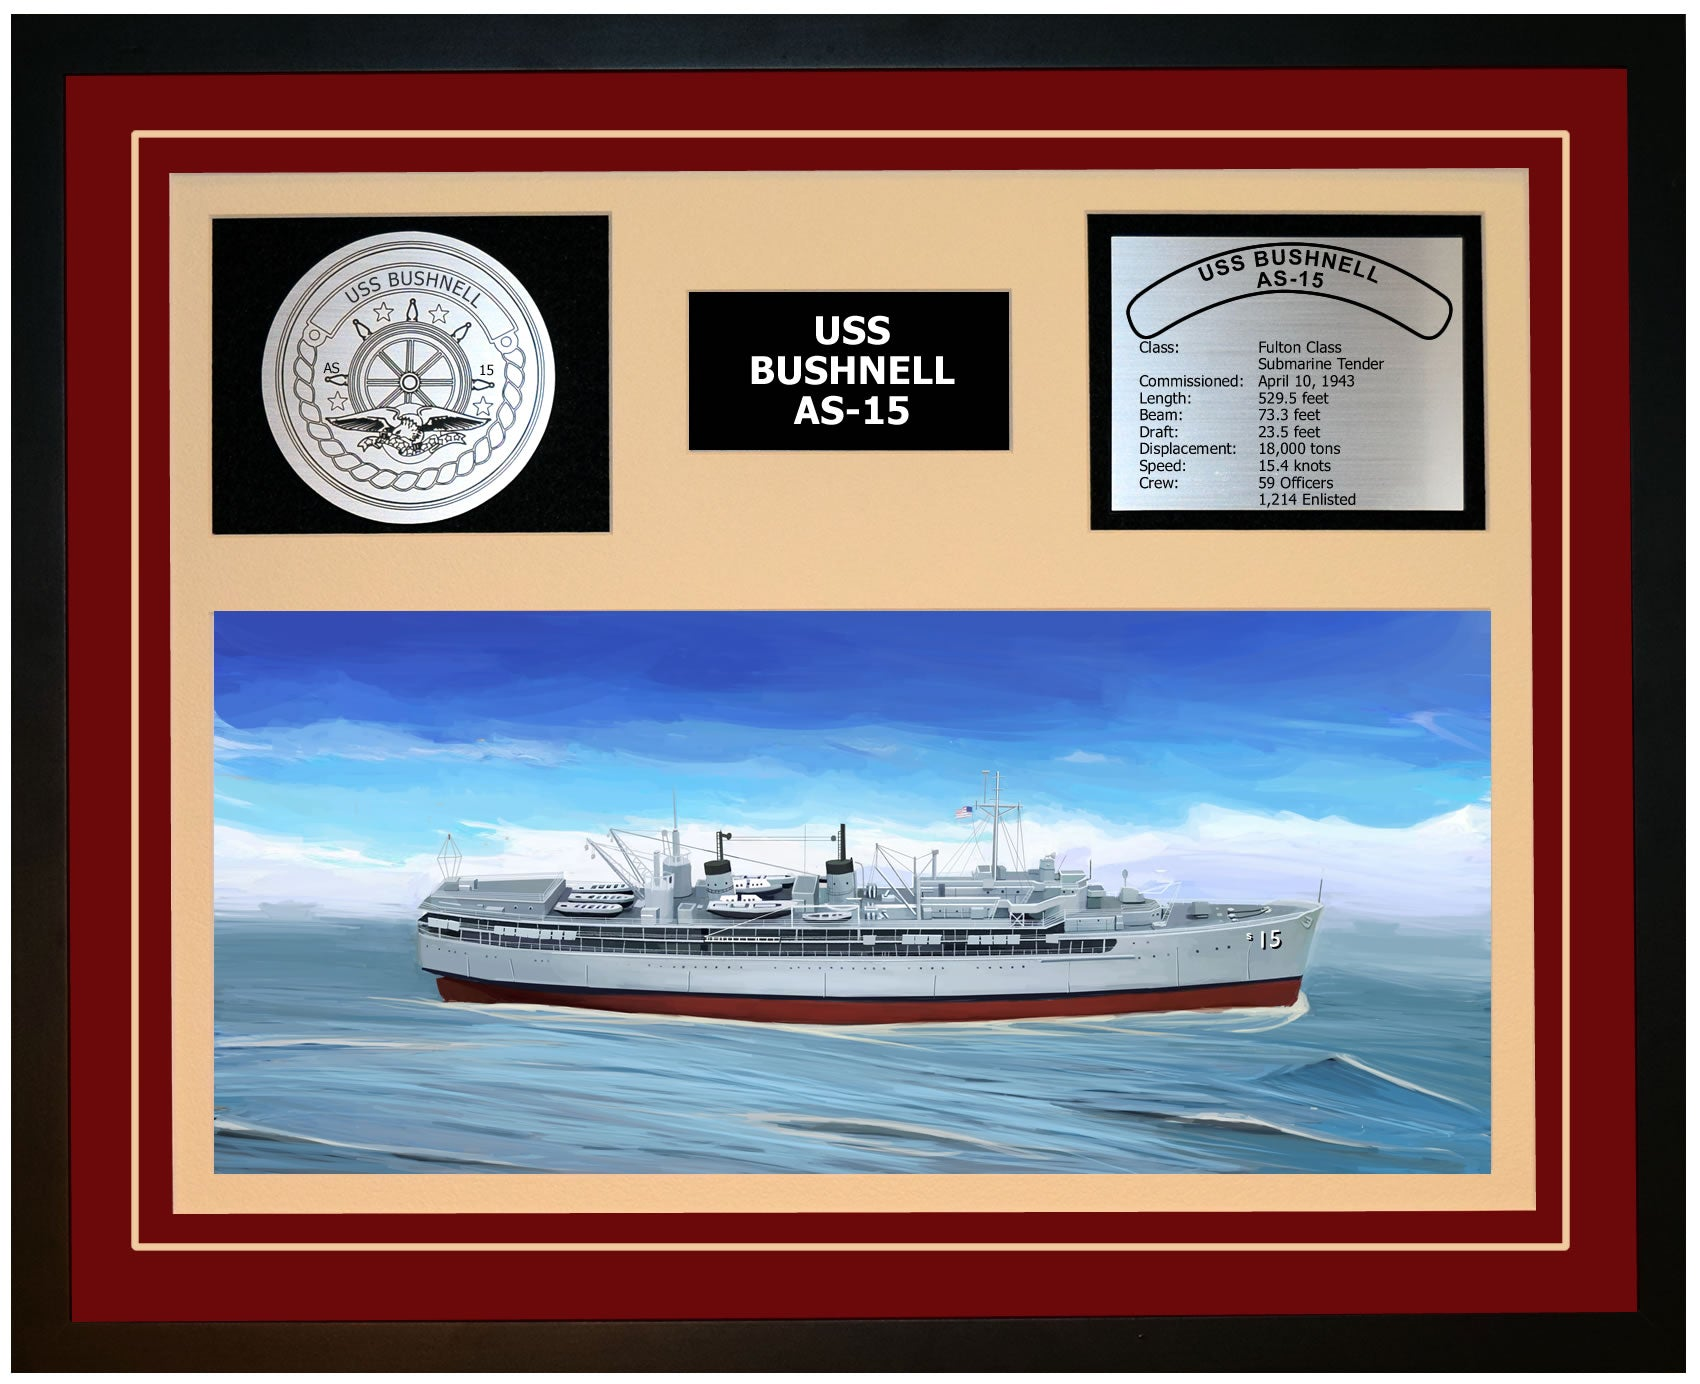 USS BUSHNELL AS-15 Framed Navy Ship Display Burgundy